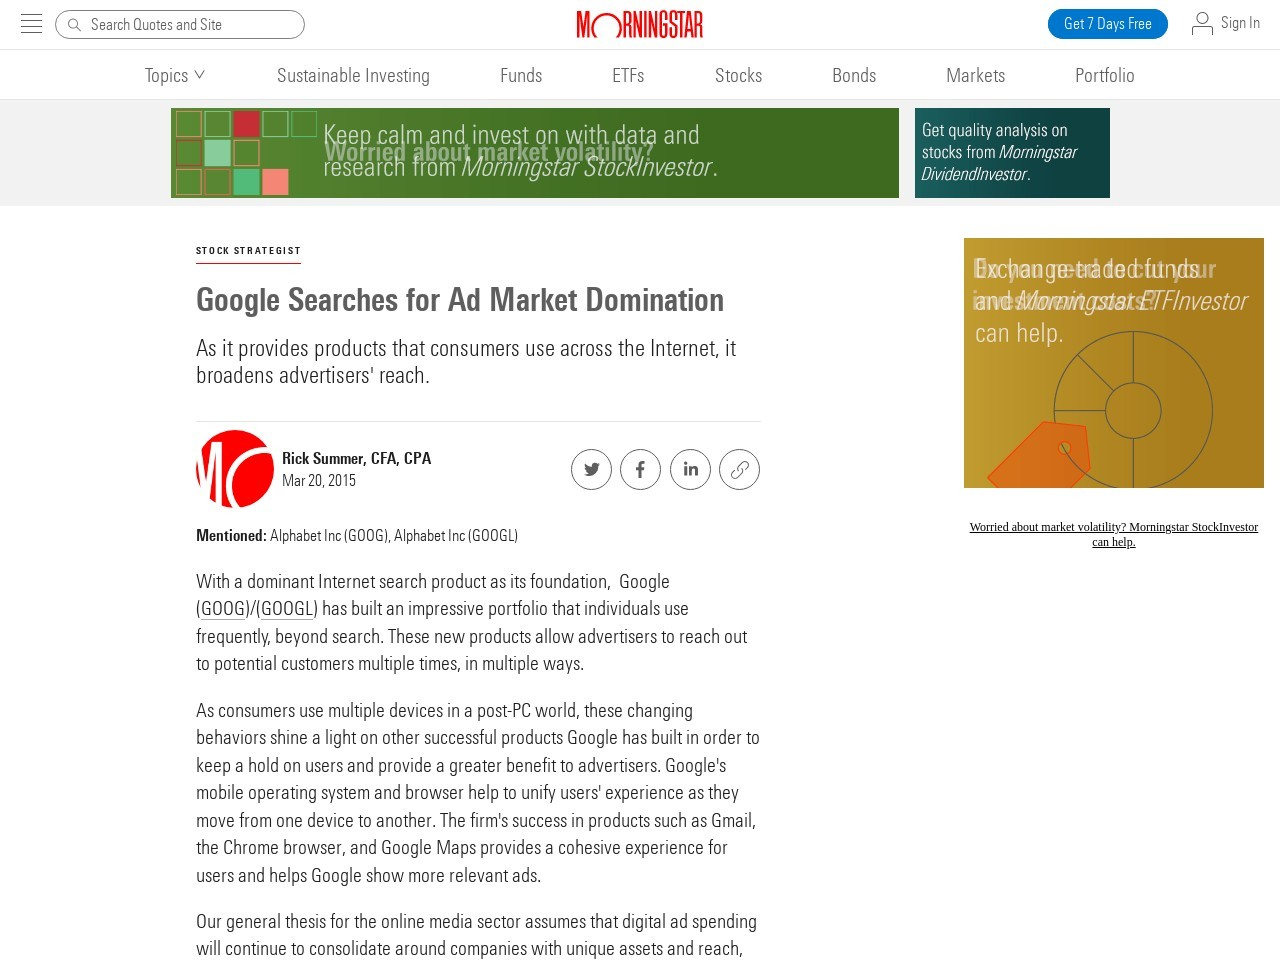 Google Searches for Ad Market Domination